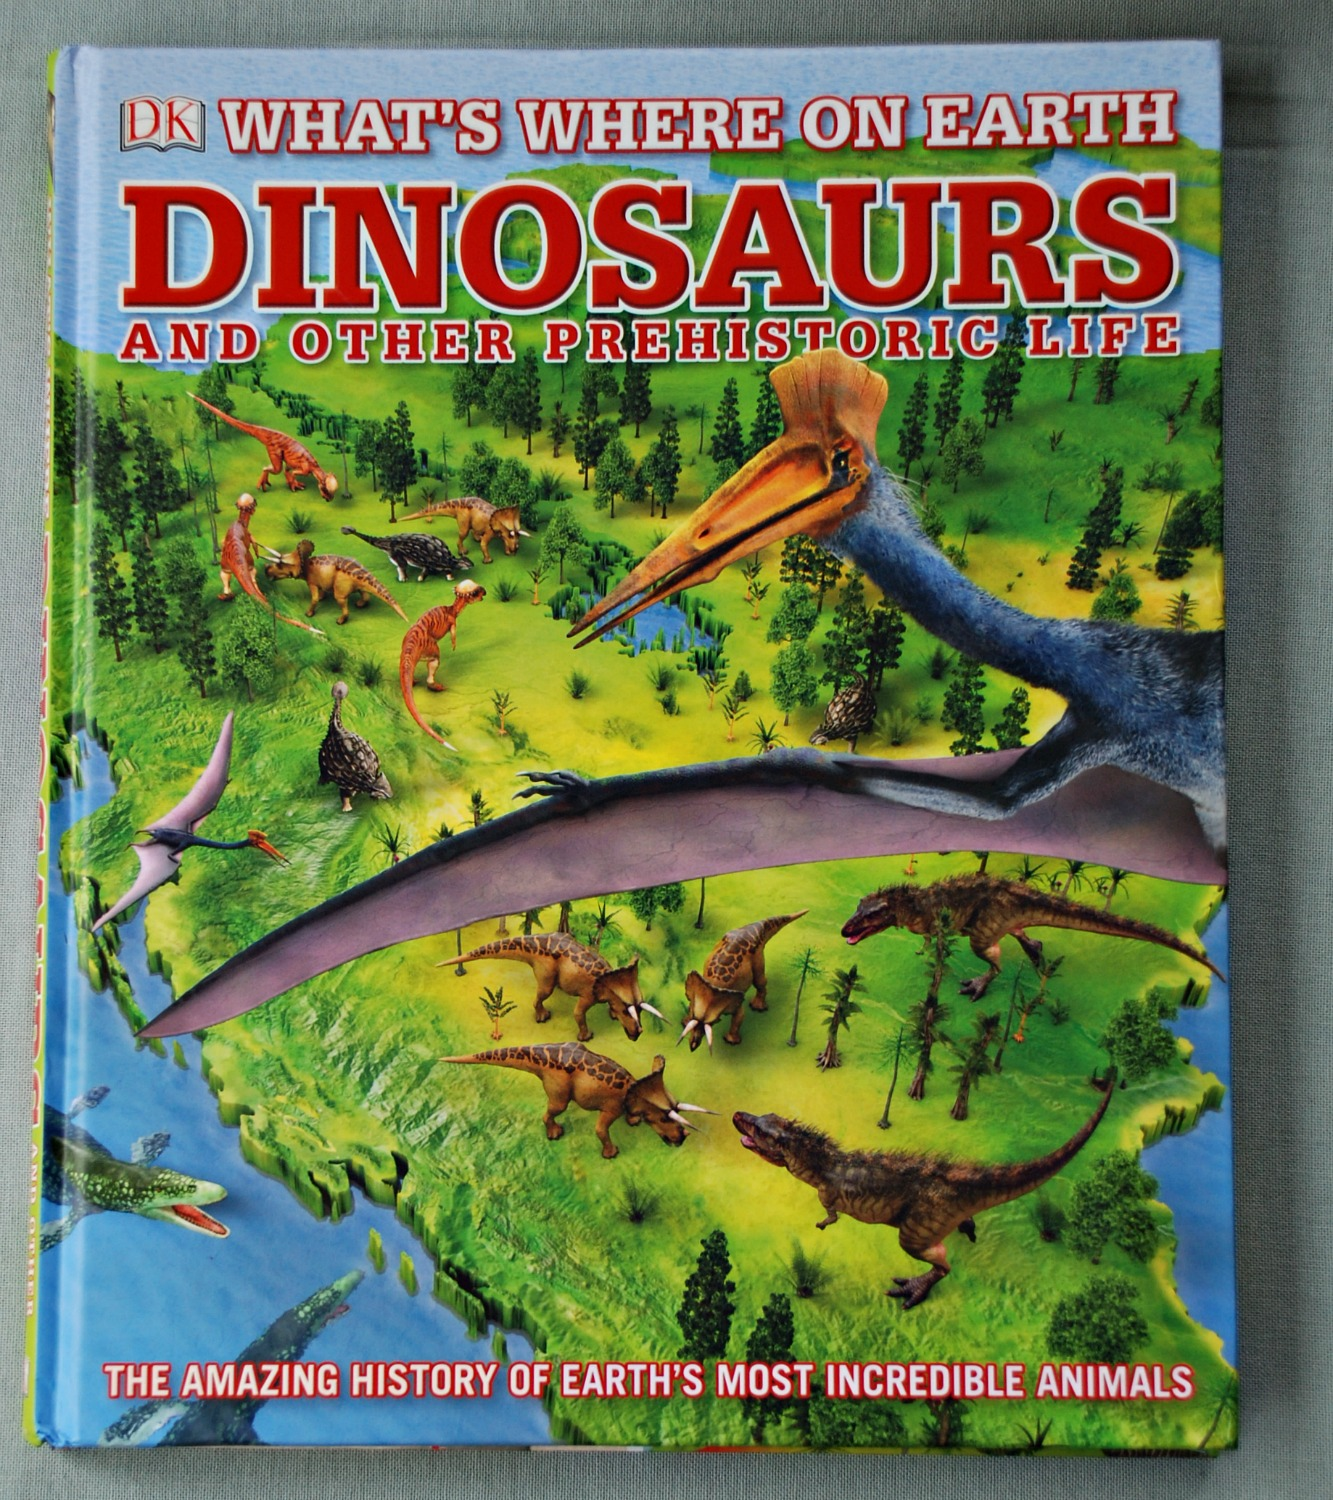 DK What's Where on Earth Dinosaurs and othe Prehistoric Life. One of the best dinosaur books